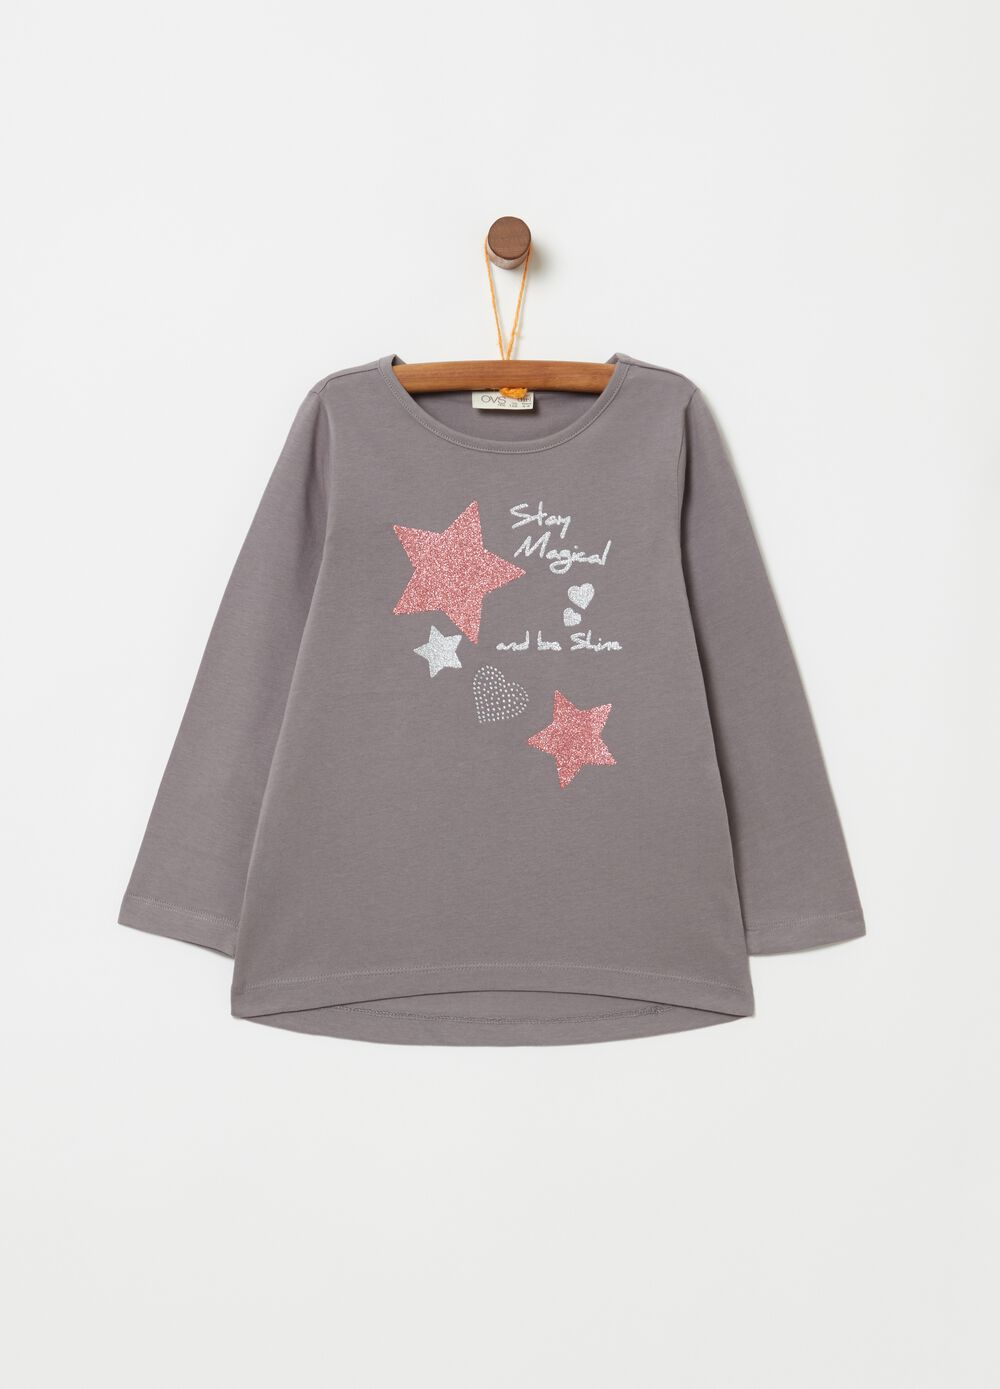 100% cotton T-shirt with print and glitter